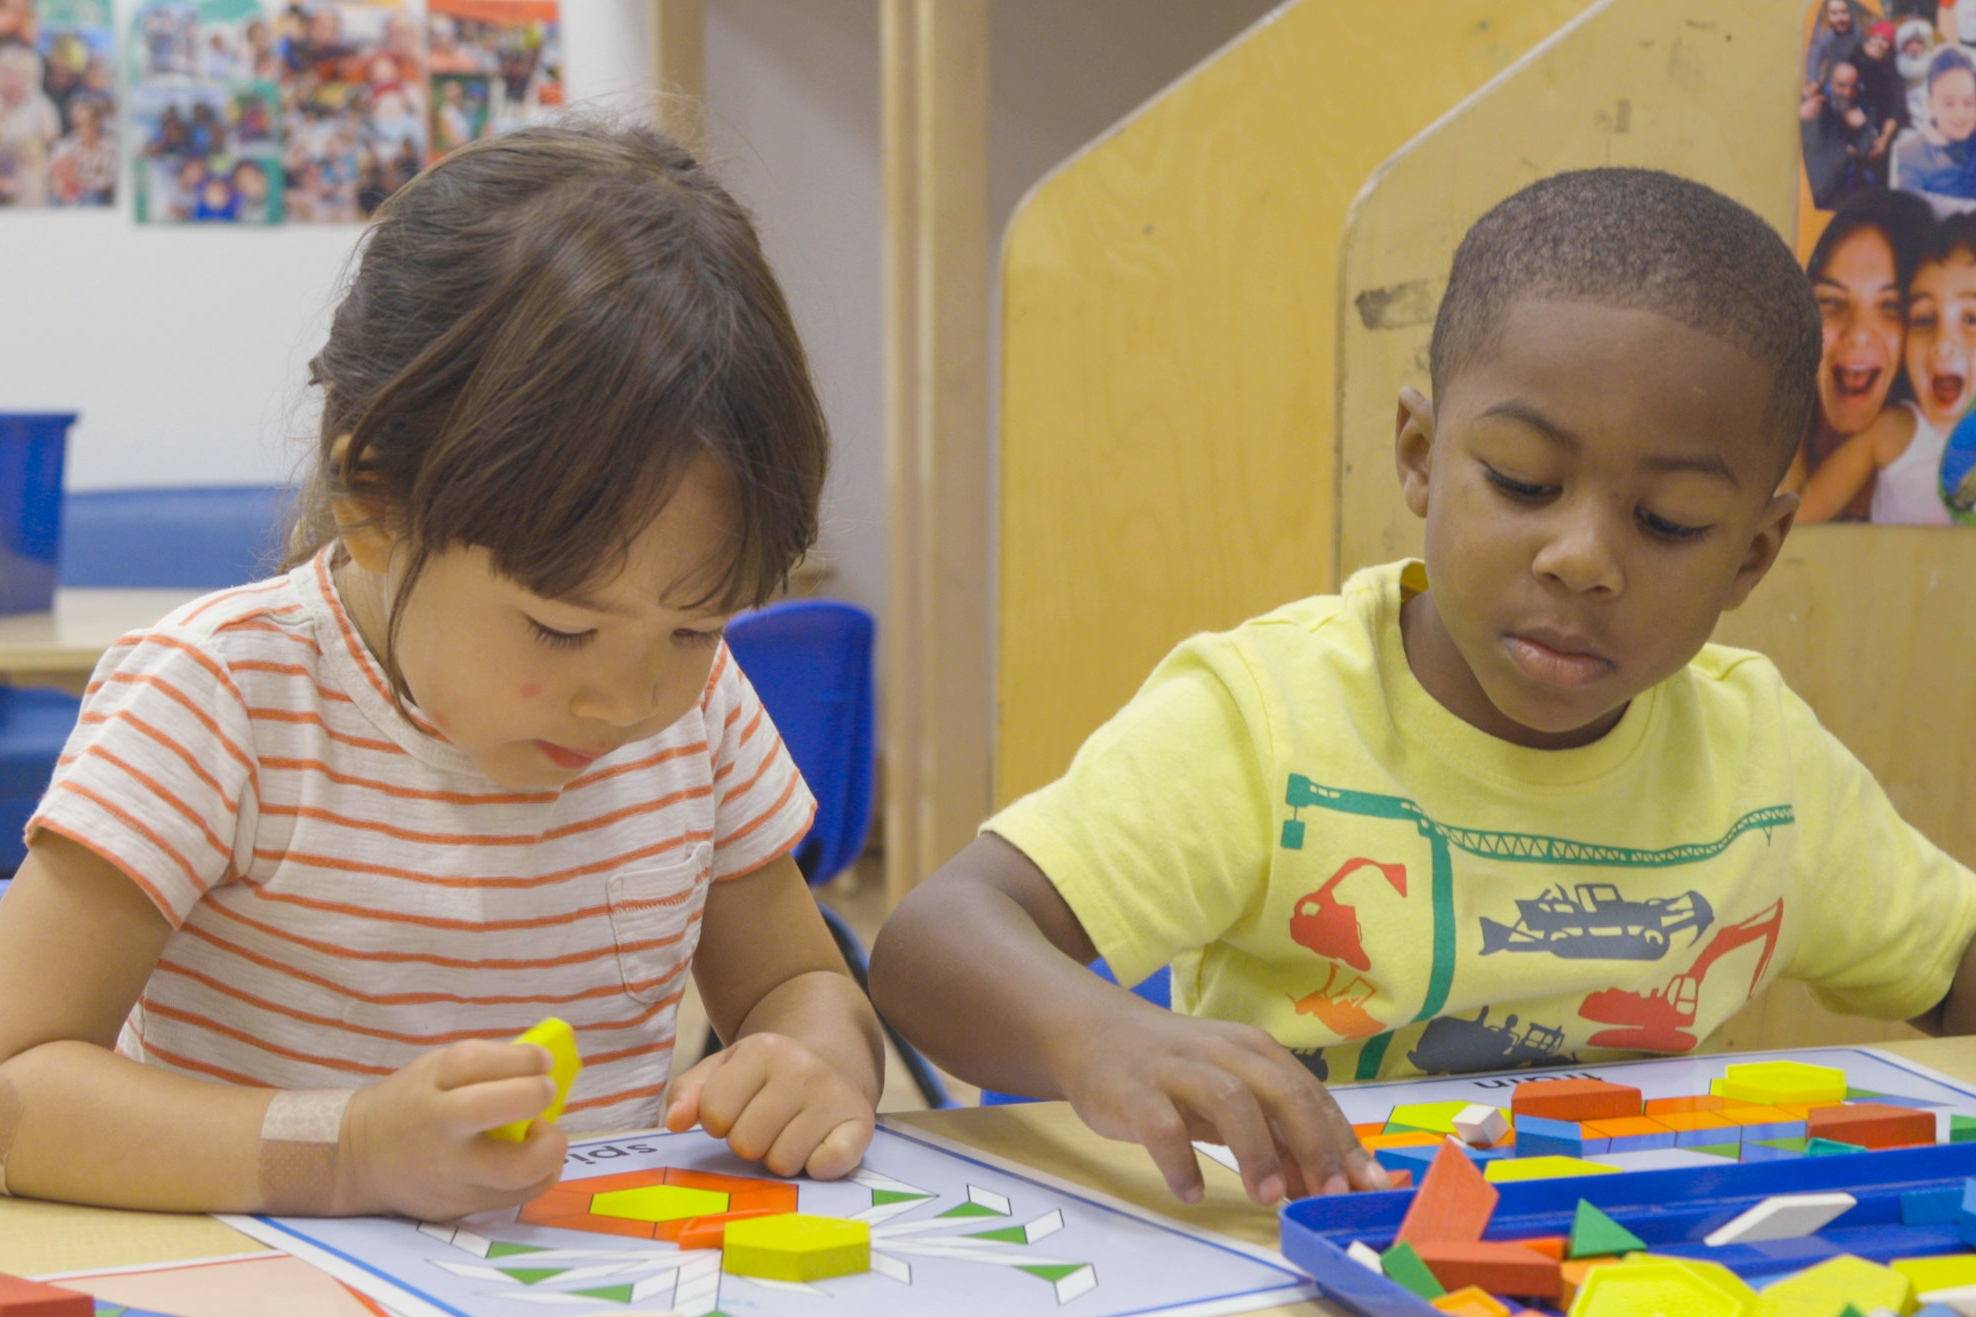 Classrooms - Our classrooms provide routines that promote independence and exploration, provide both structured and free time, and involve all aspects of a child's development through hands-on experience.